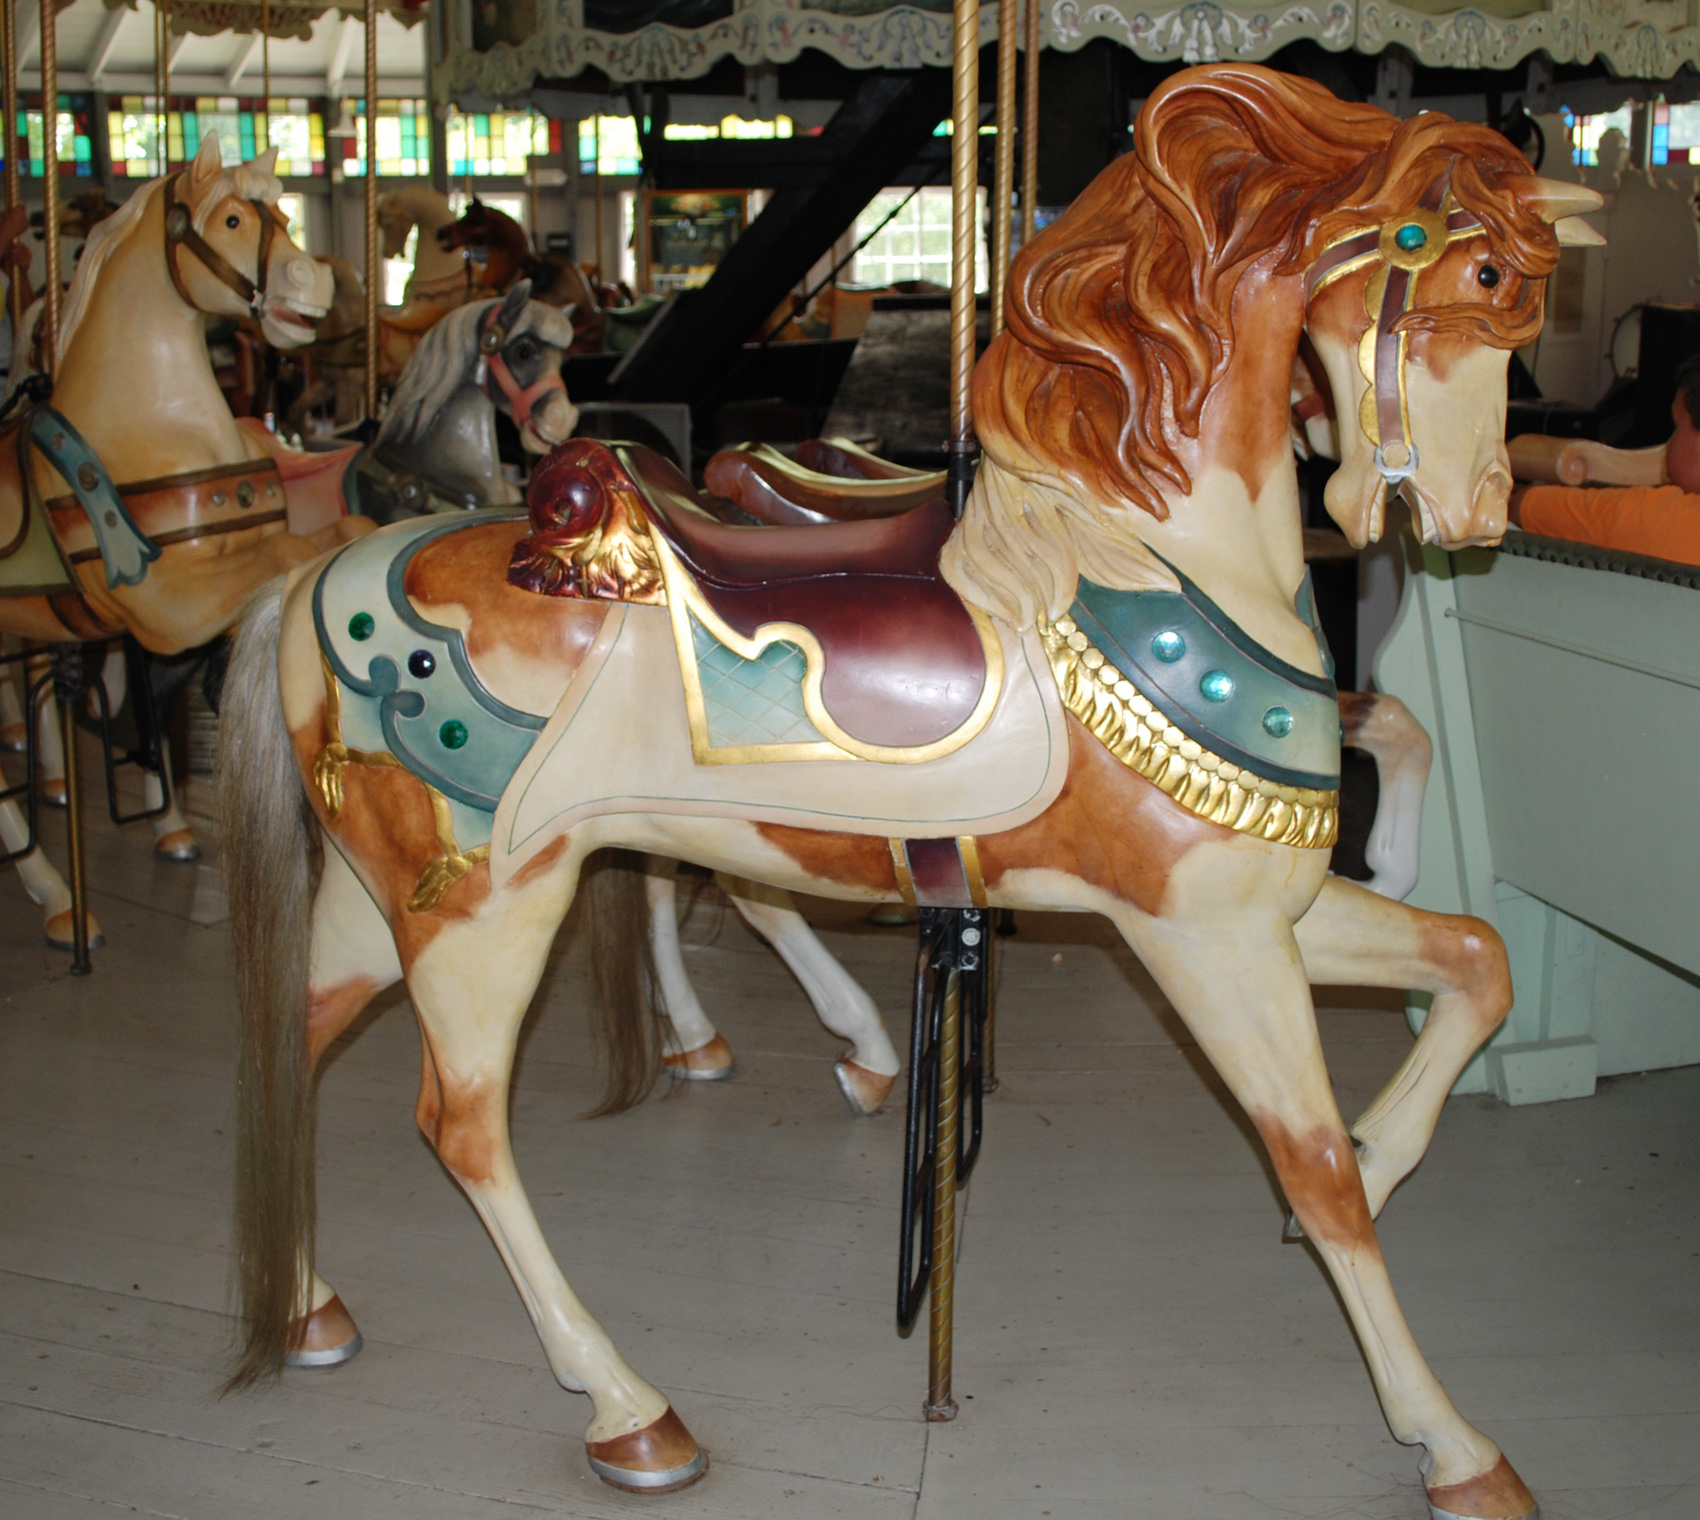 The-Looff-carousel-at-Slater-Park-Rhode-Island-64